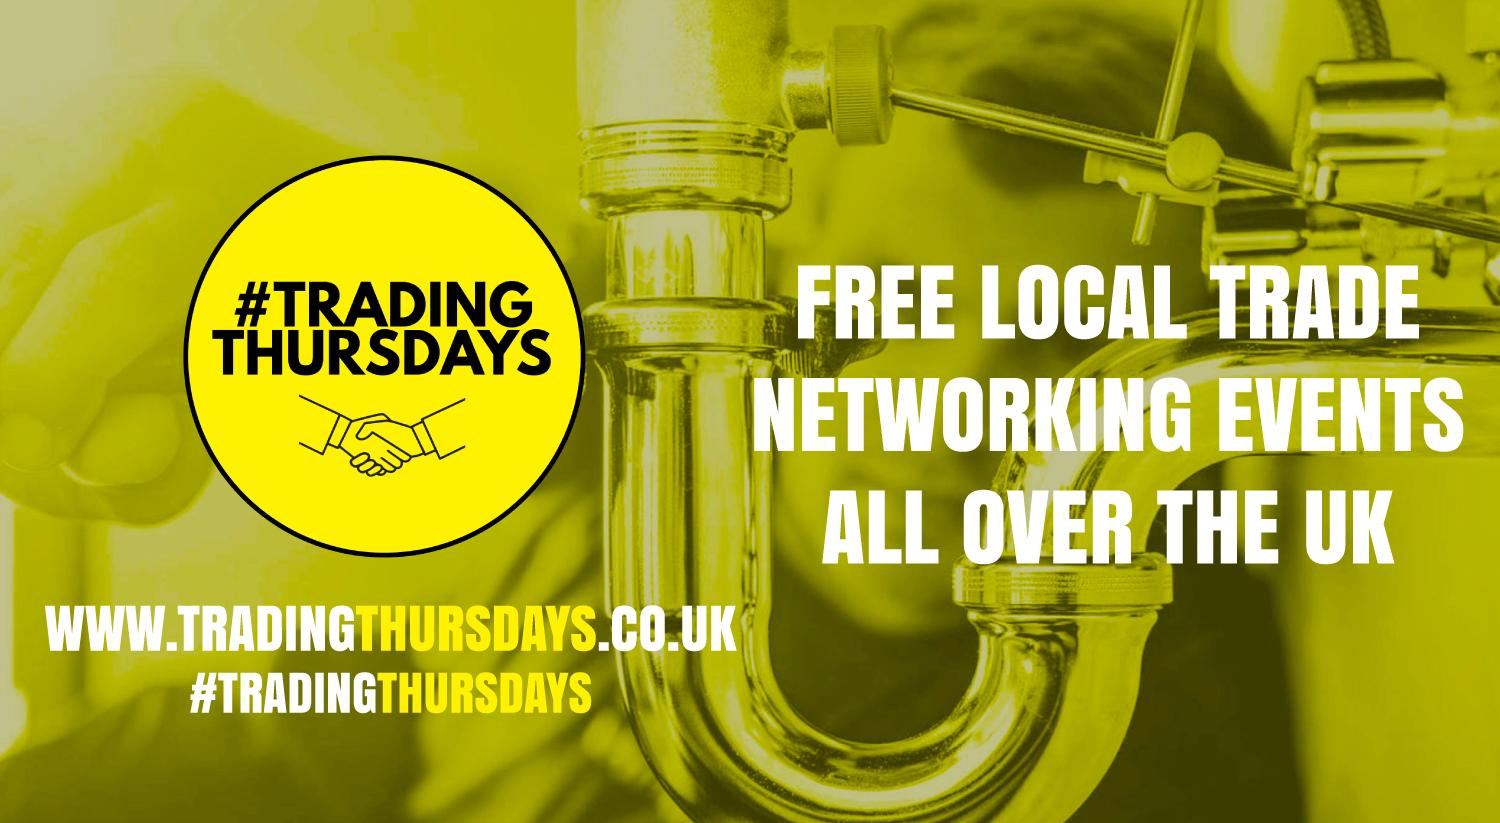 Trading Thursdays! Free networking event for traders in Clacton-on-Sea